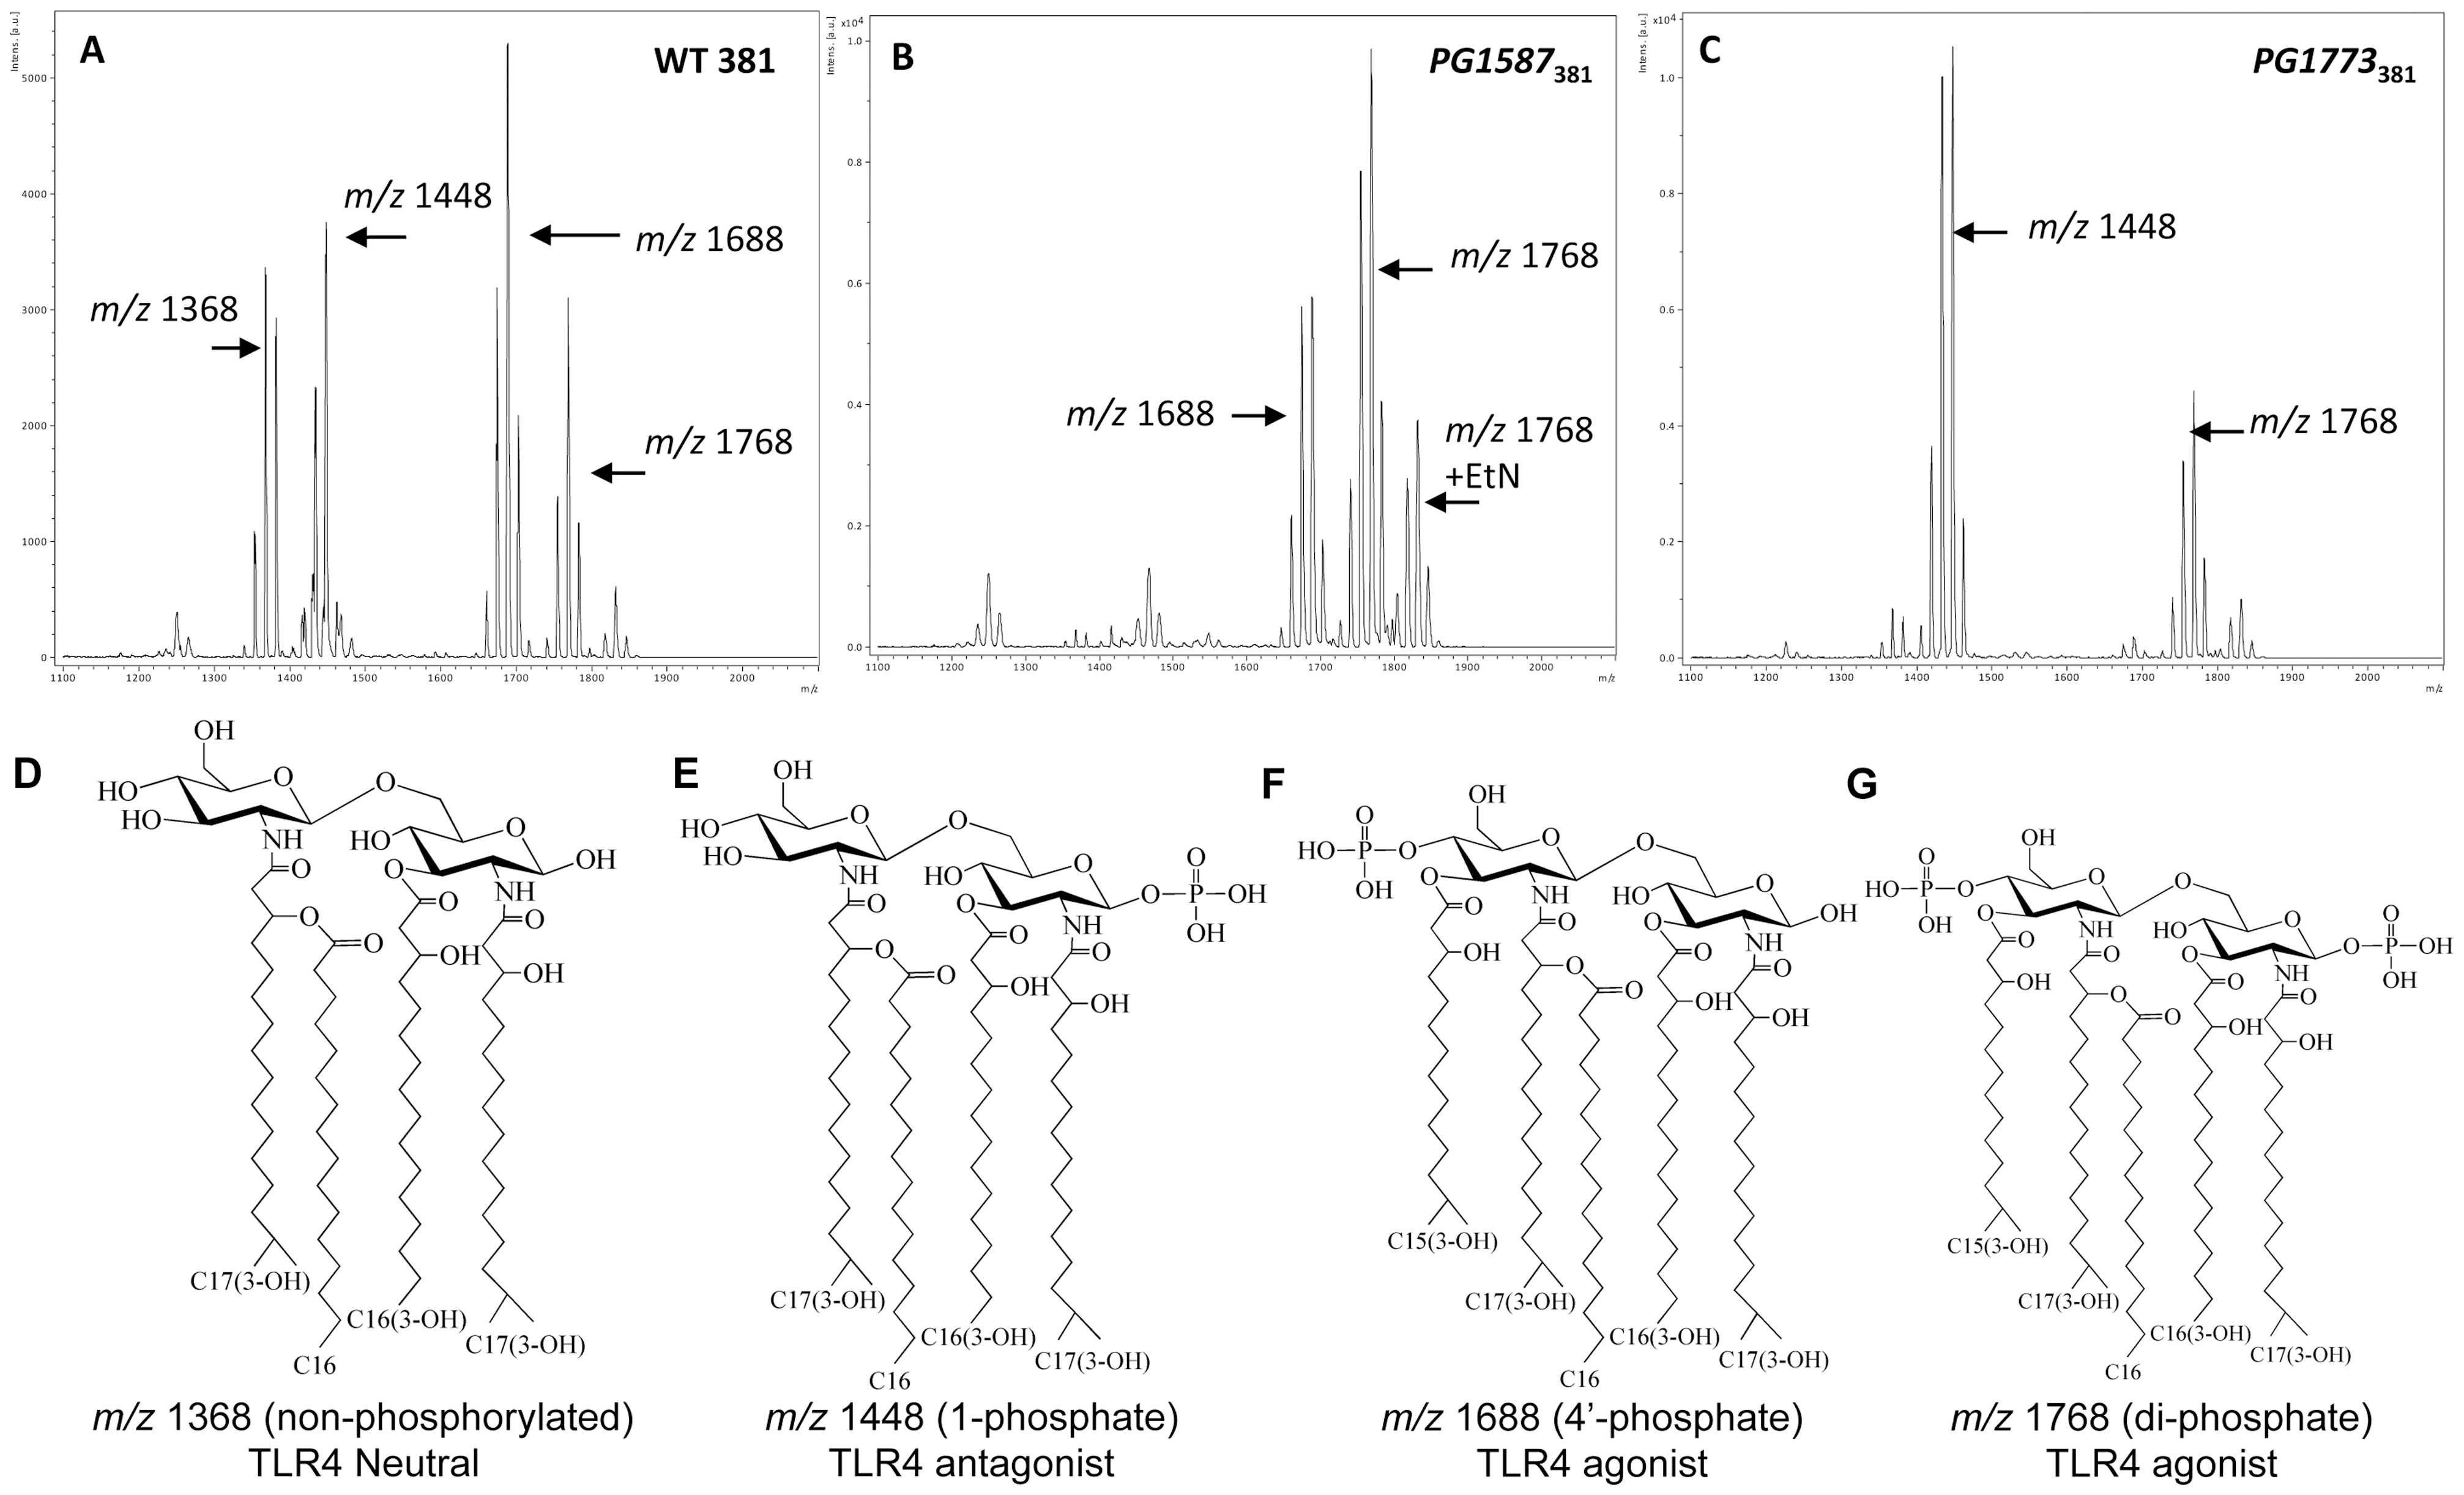 <i>P. gingivalis</i> strain 381 utilizes endogenous lipid A 1- and 4′- phosphatase activities to modify lipid A species and evade TLR4 activation.